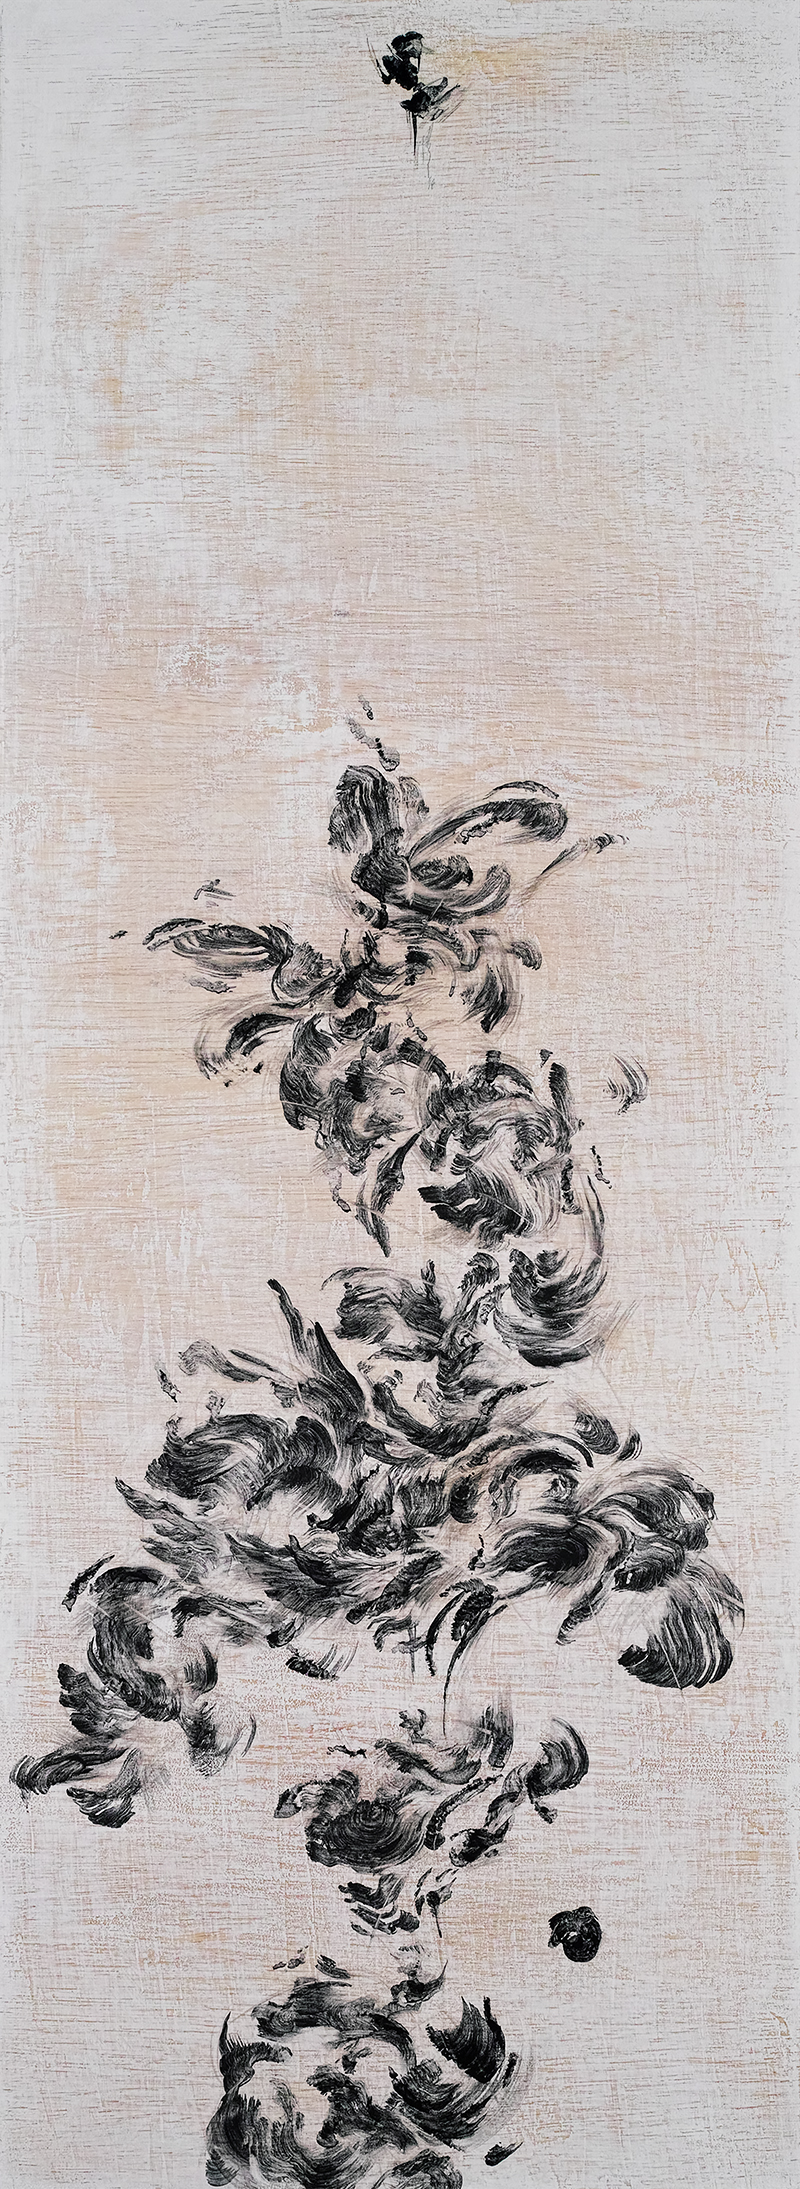 "Flower Flights II    Charcoal on wood 2018 110cm x 40cm  Exhibited at Art Porters Gallery ""Flower Flights"" solo exhibition.  past series:  Flower Flights"